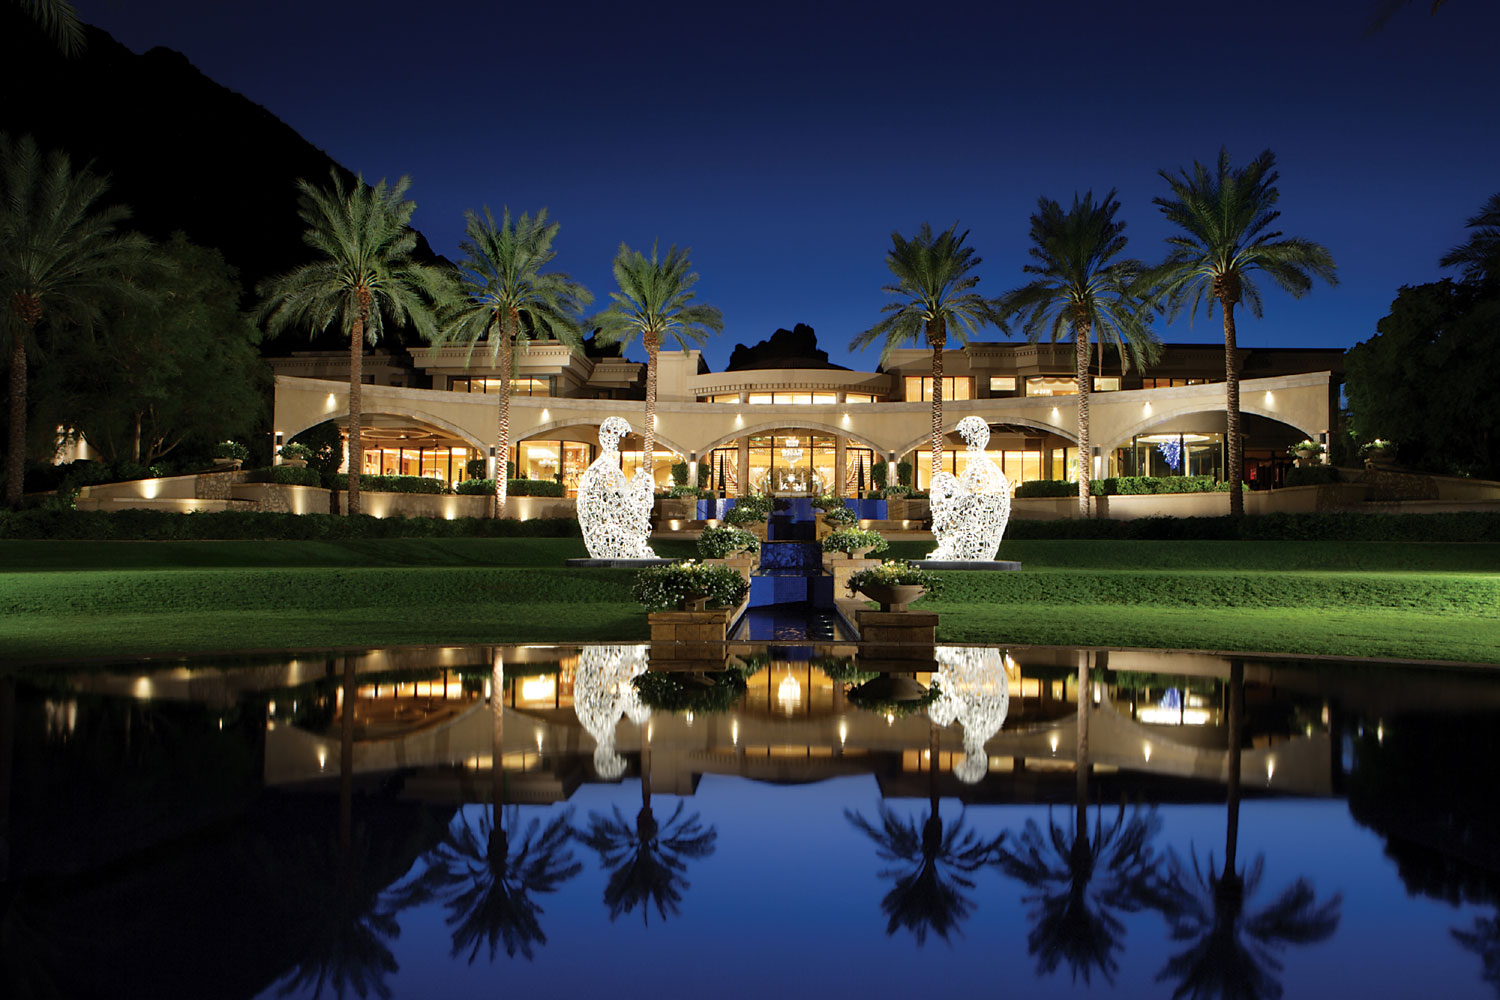 A pair of illuminated sculptures, sitting astride a central waterway, guard the entrance to Villa Paradiso, an estate of unmatched grandeur in Arizona's Paradise Valley.